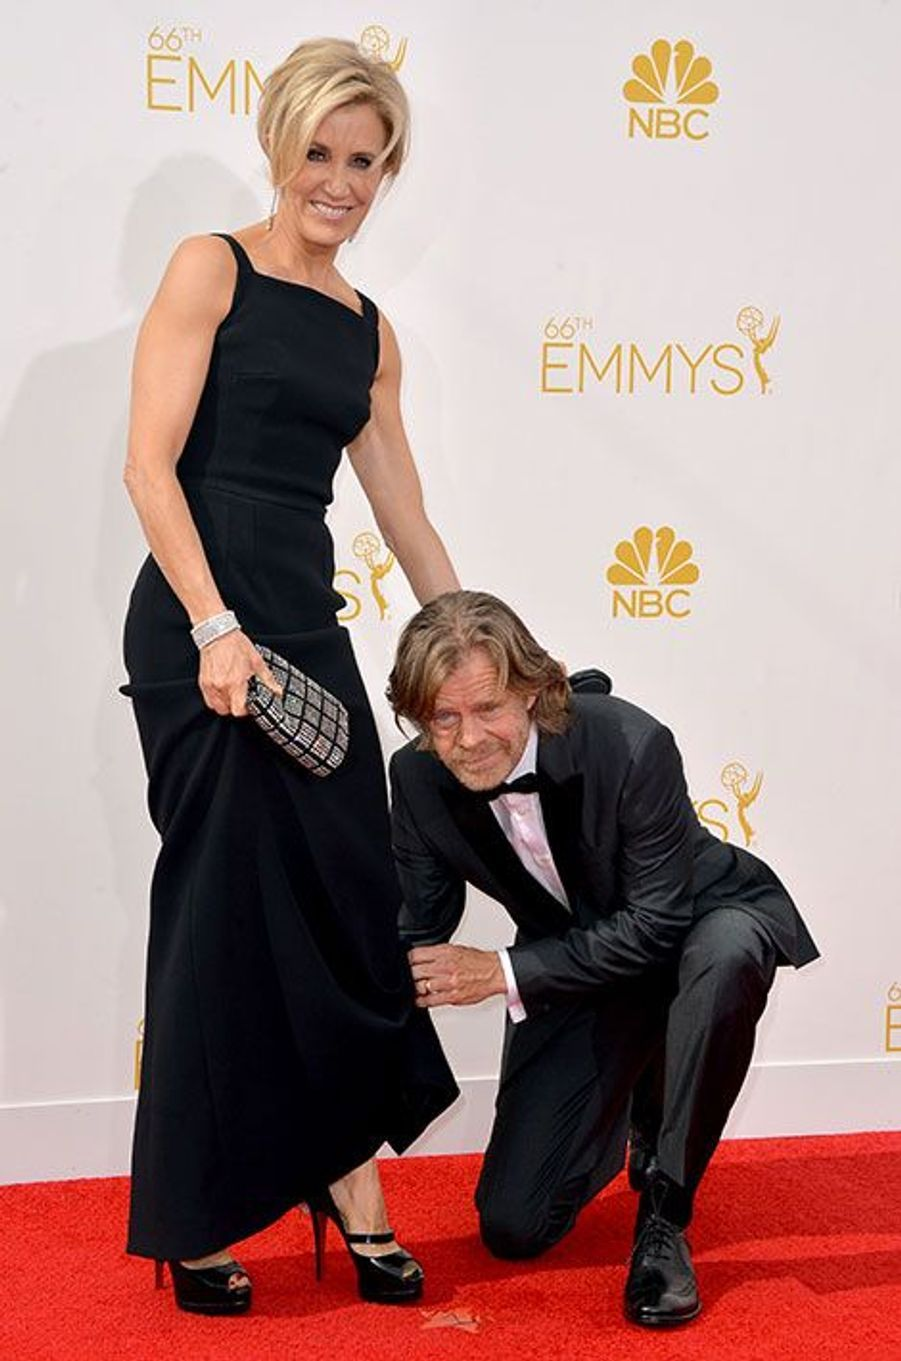 Felicity Huffman et William H. Macy aux Emmy Awards 2014